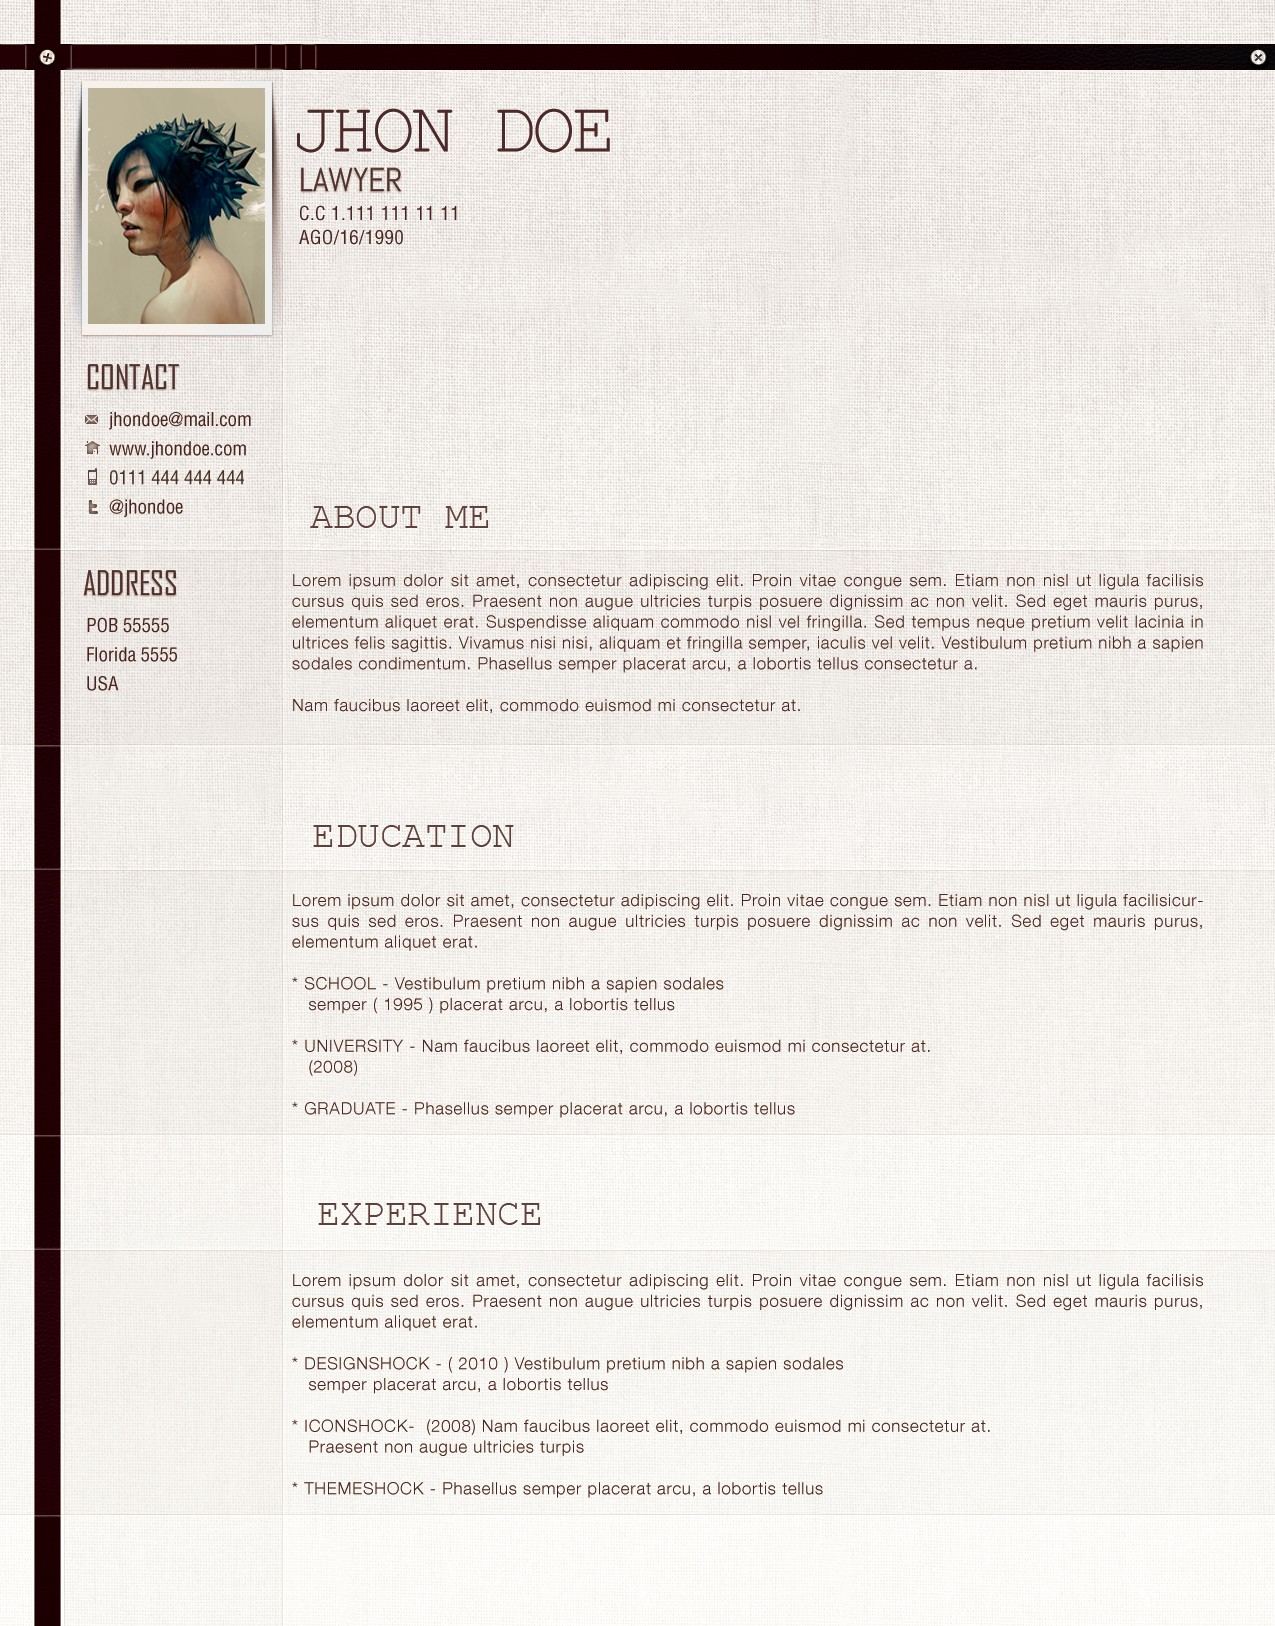 Cv Example In English Lawyer | Cover Letter And Resume Samples